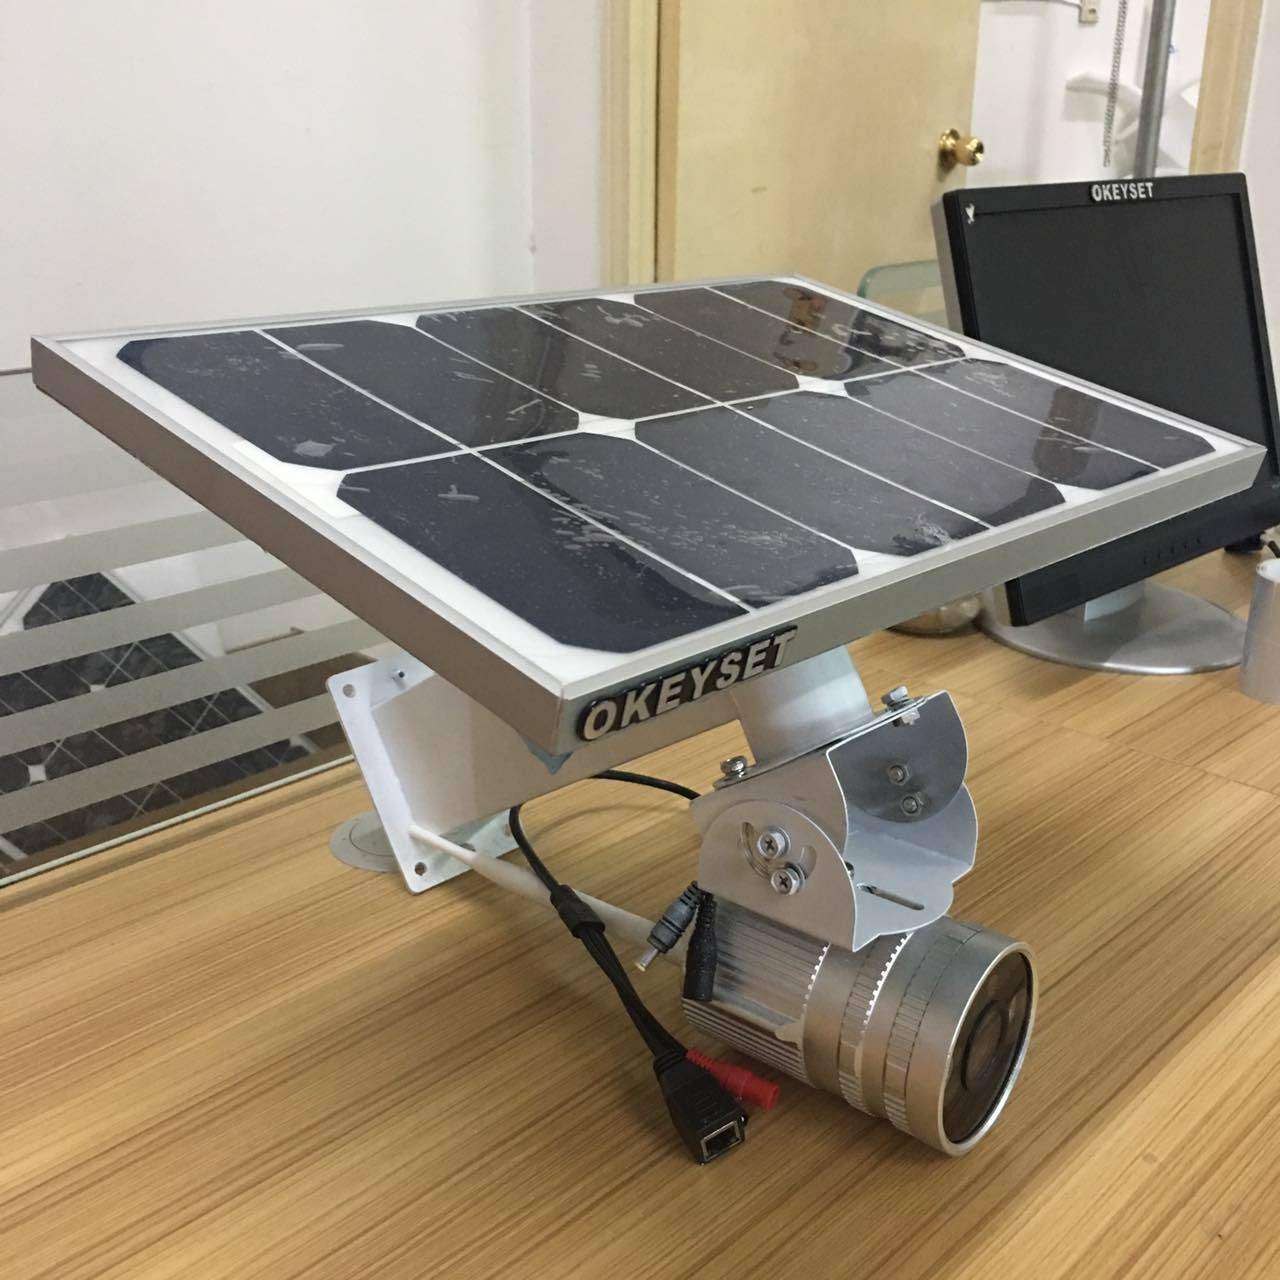 okeyset solar power wireless IP camera